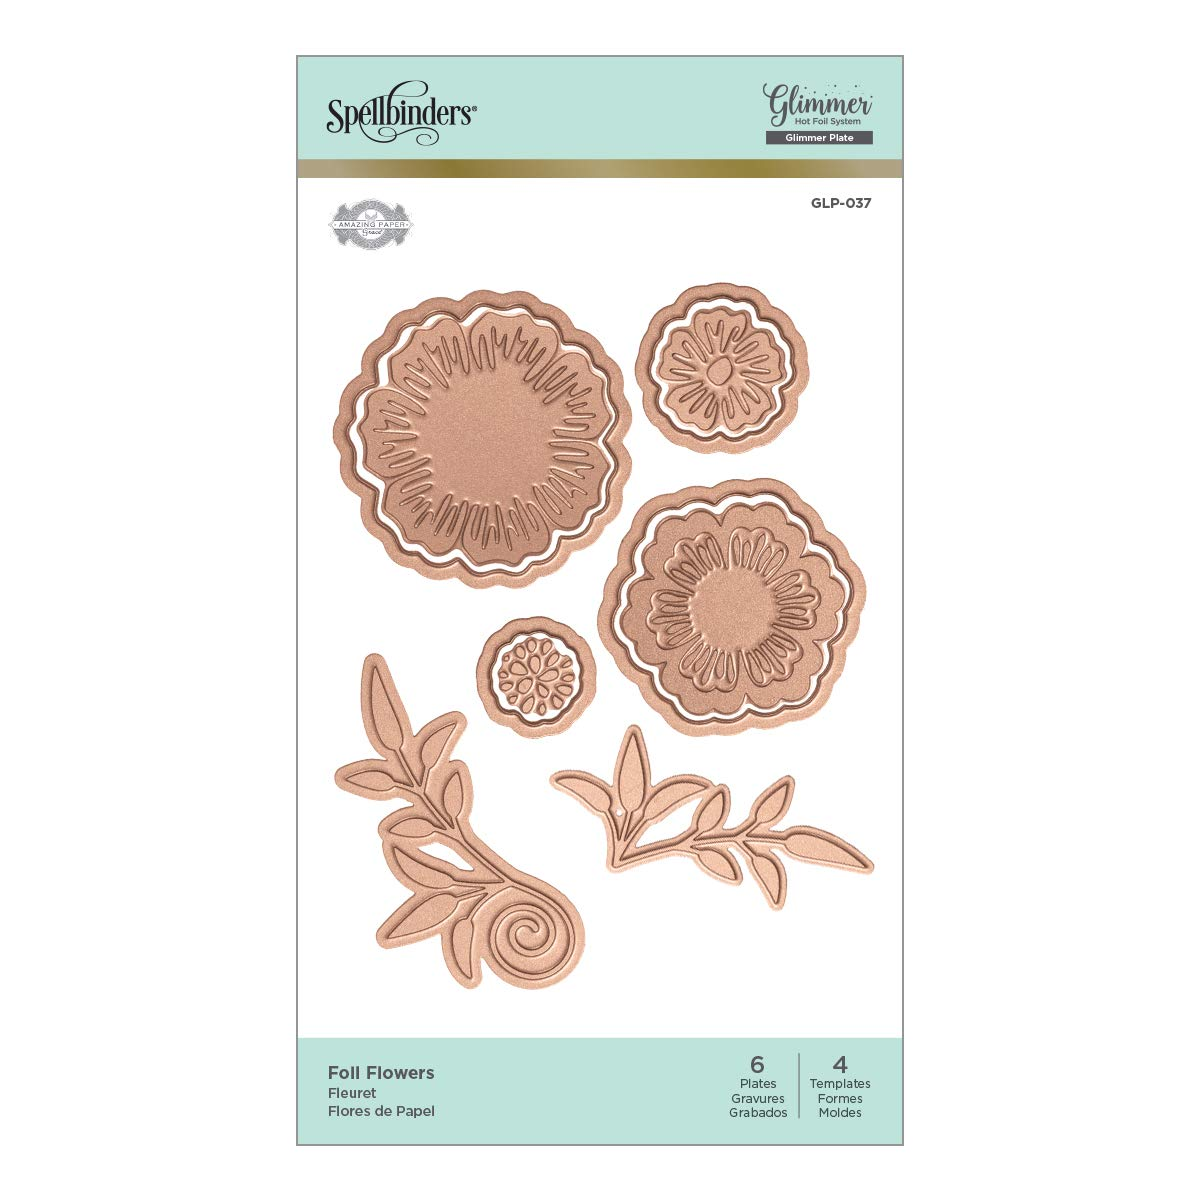 Amazon.com: Spellbinders GLP-037 Flowers by Becca Feeken Glimmer Hot Foil Plate Metal